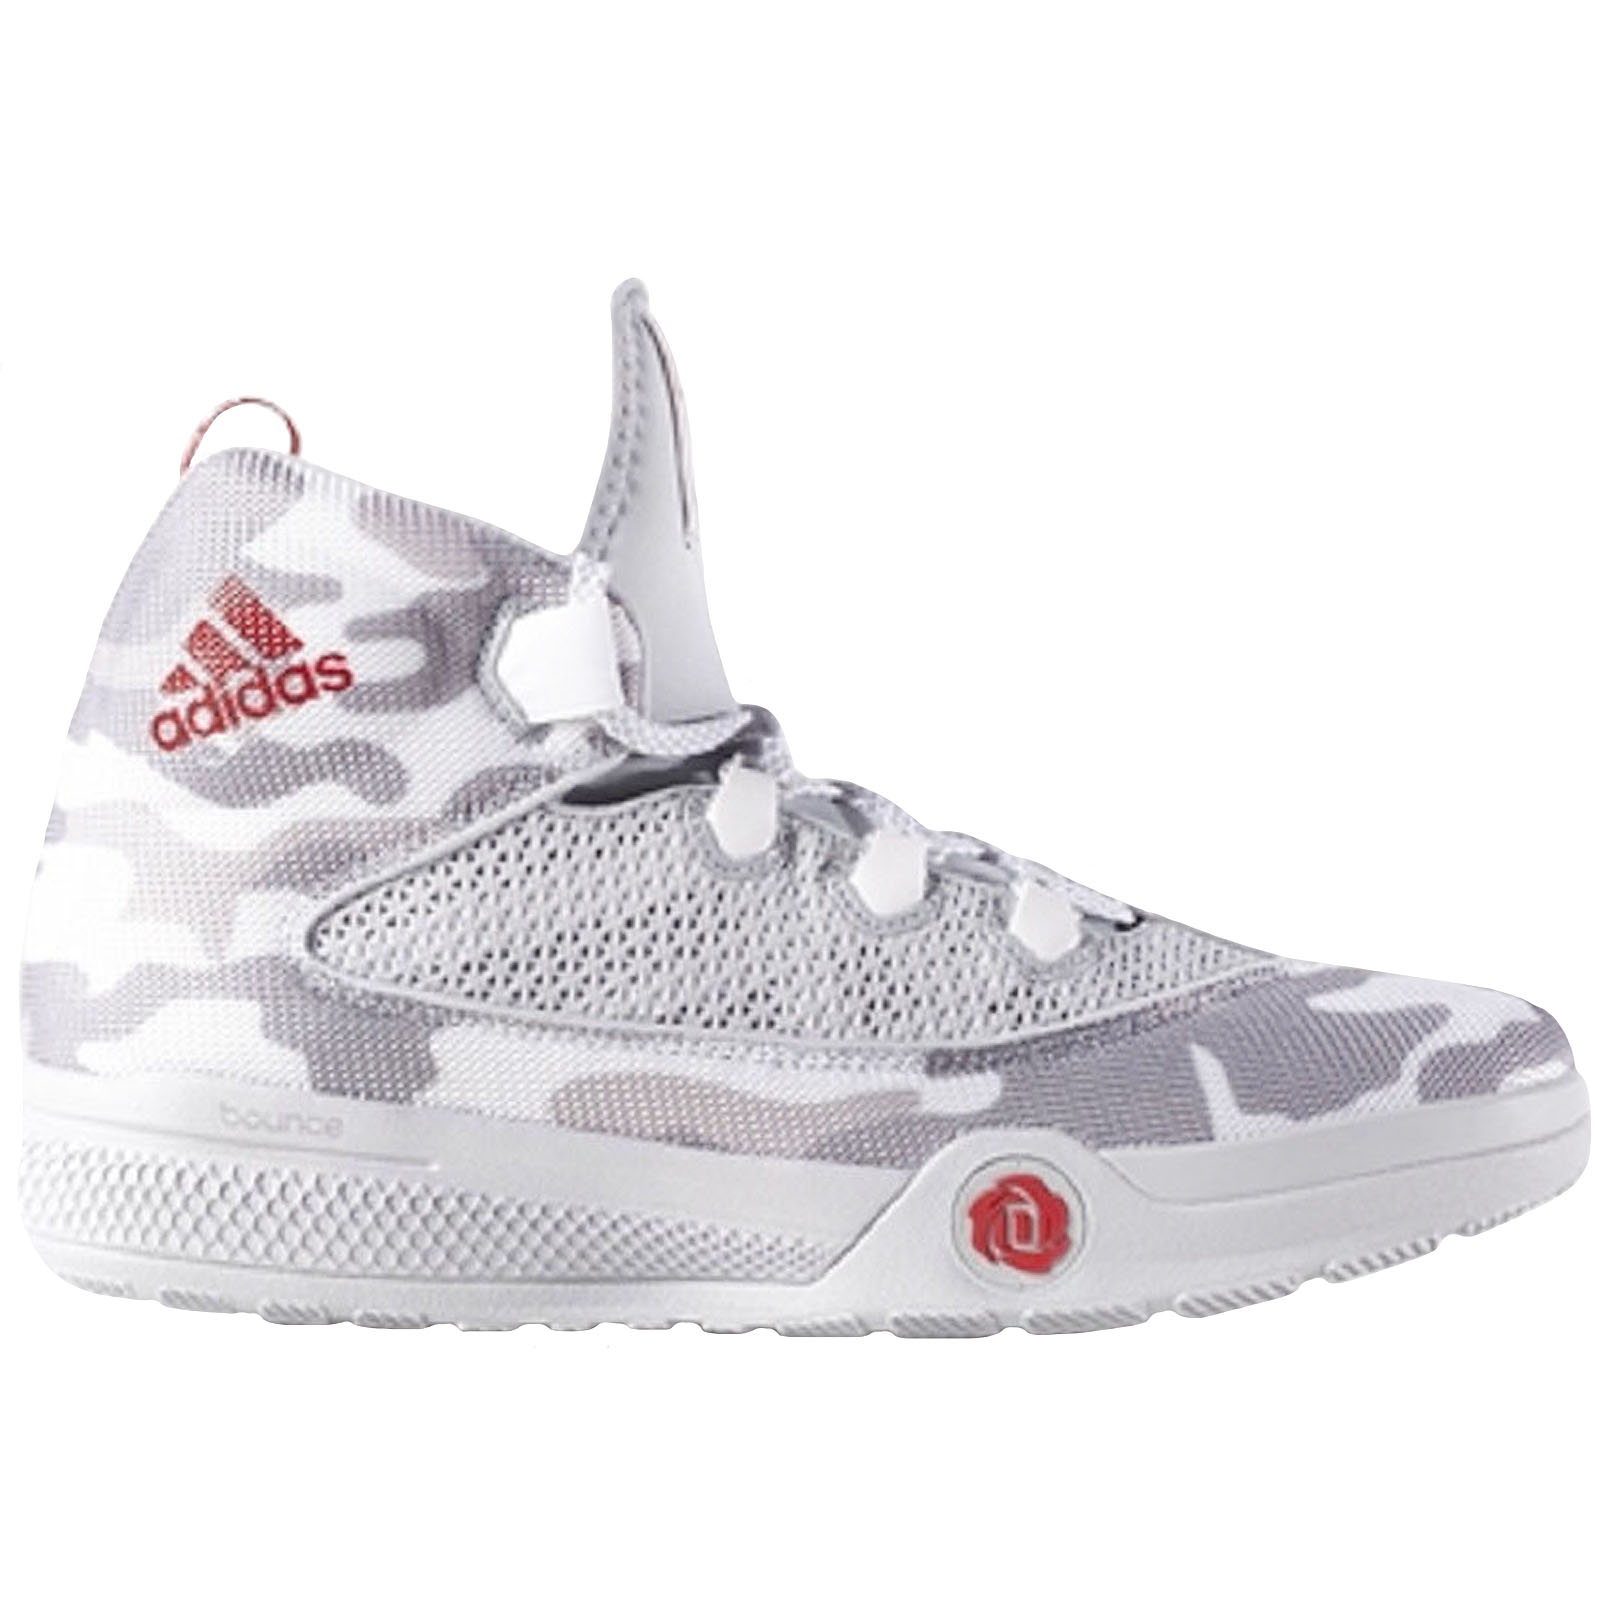 competitive price d6788 1a58e adidas D Rose Dominate 2016 Derick Rose Grey Camo Mens Basketball Shoes  AQ8455 UK 11.5. About this product. Picture 1 of 5 Picture 2 of 5 ...